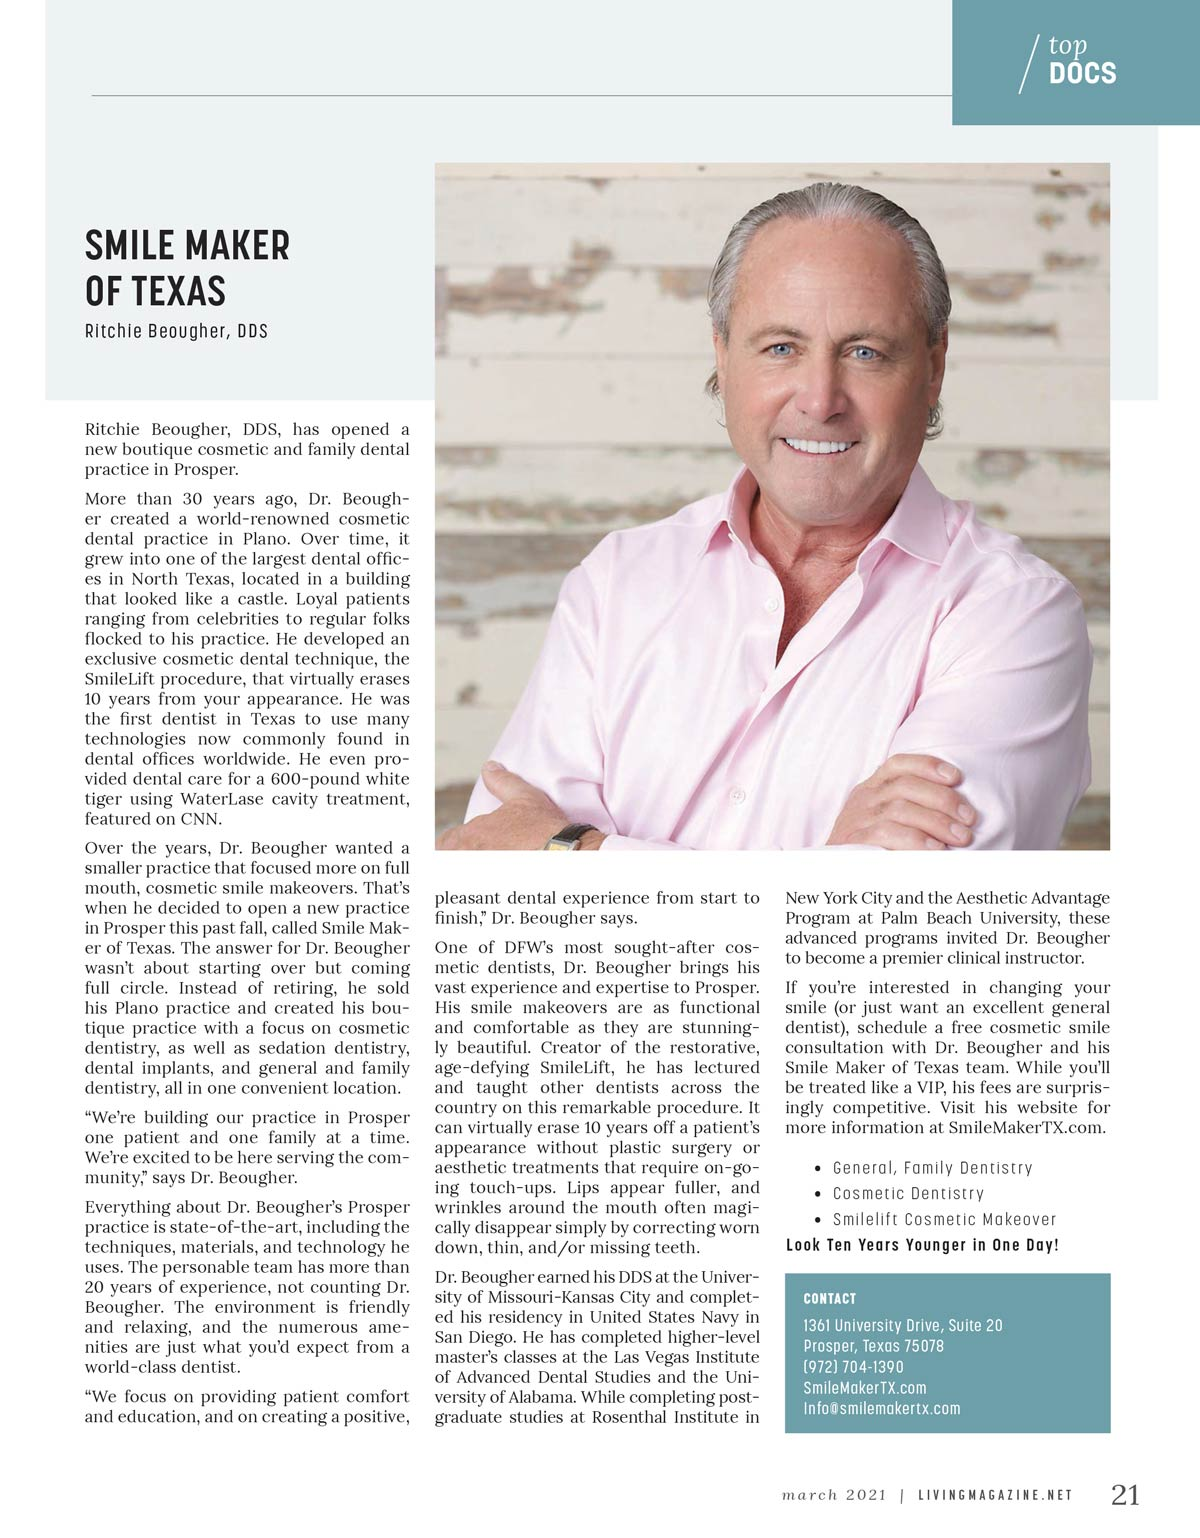 Smile Maker of Texas Named Top Doctor